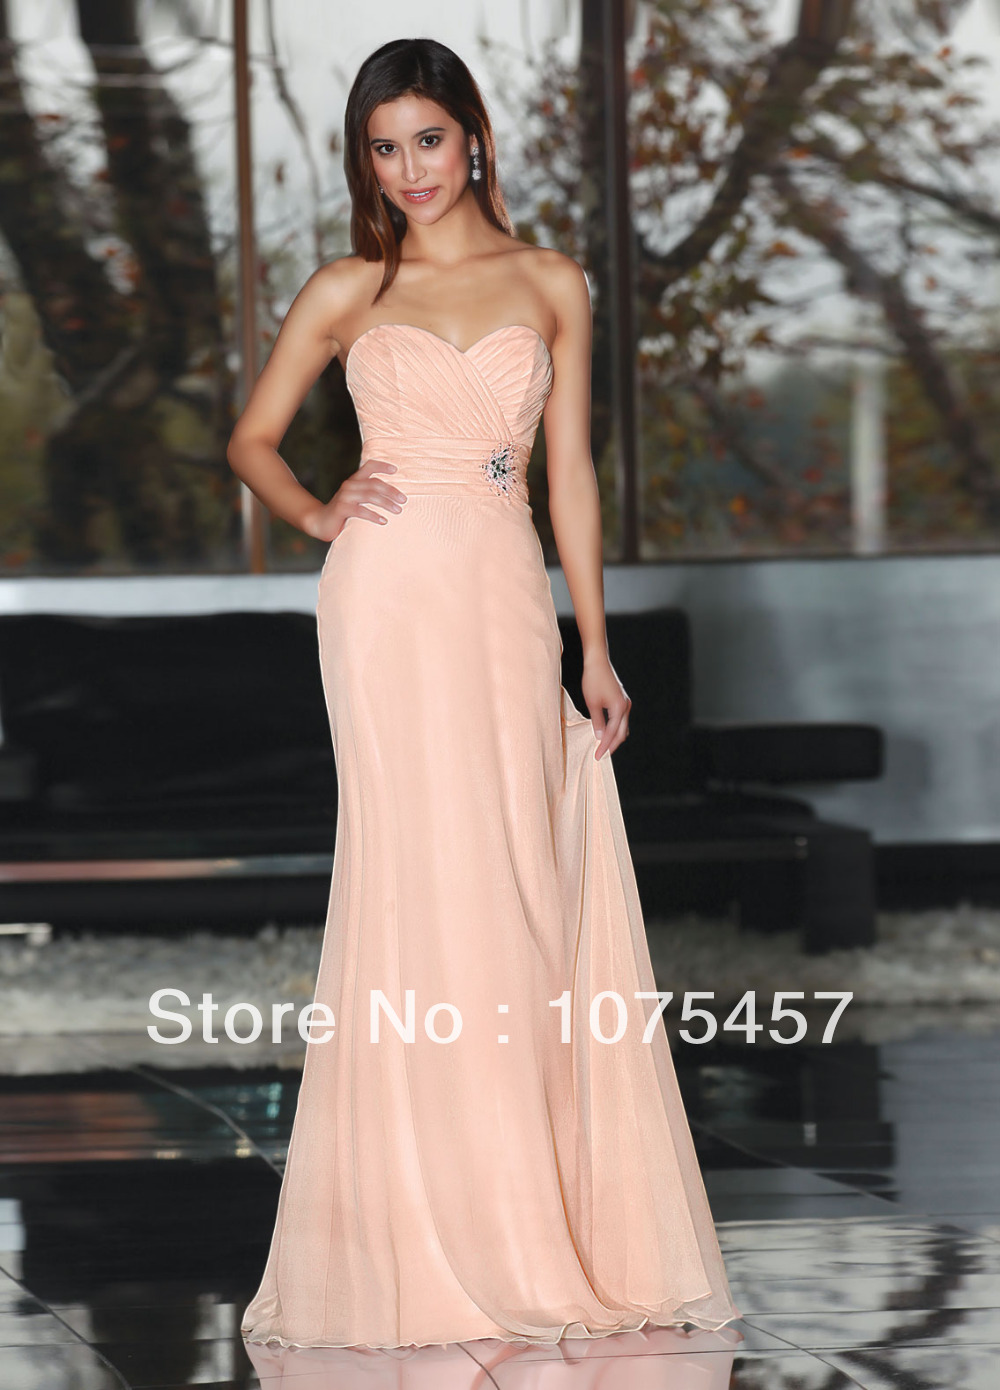 Wedding Nude Bridesmaid Dress online buy wholesale nude bridesmaid dresses from china chiffon sweetheart pleat sashes beading off the shoulder floor length free shipping jb287